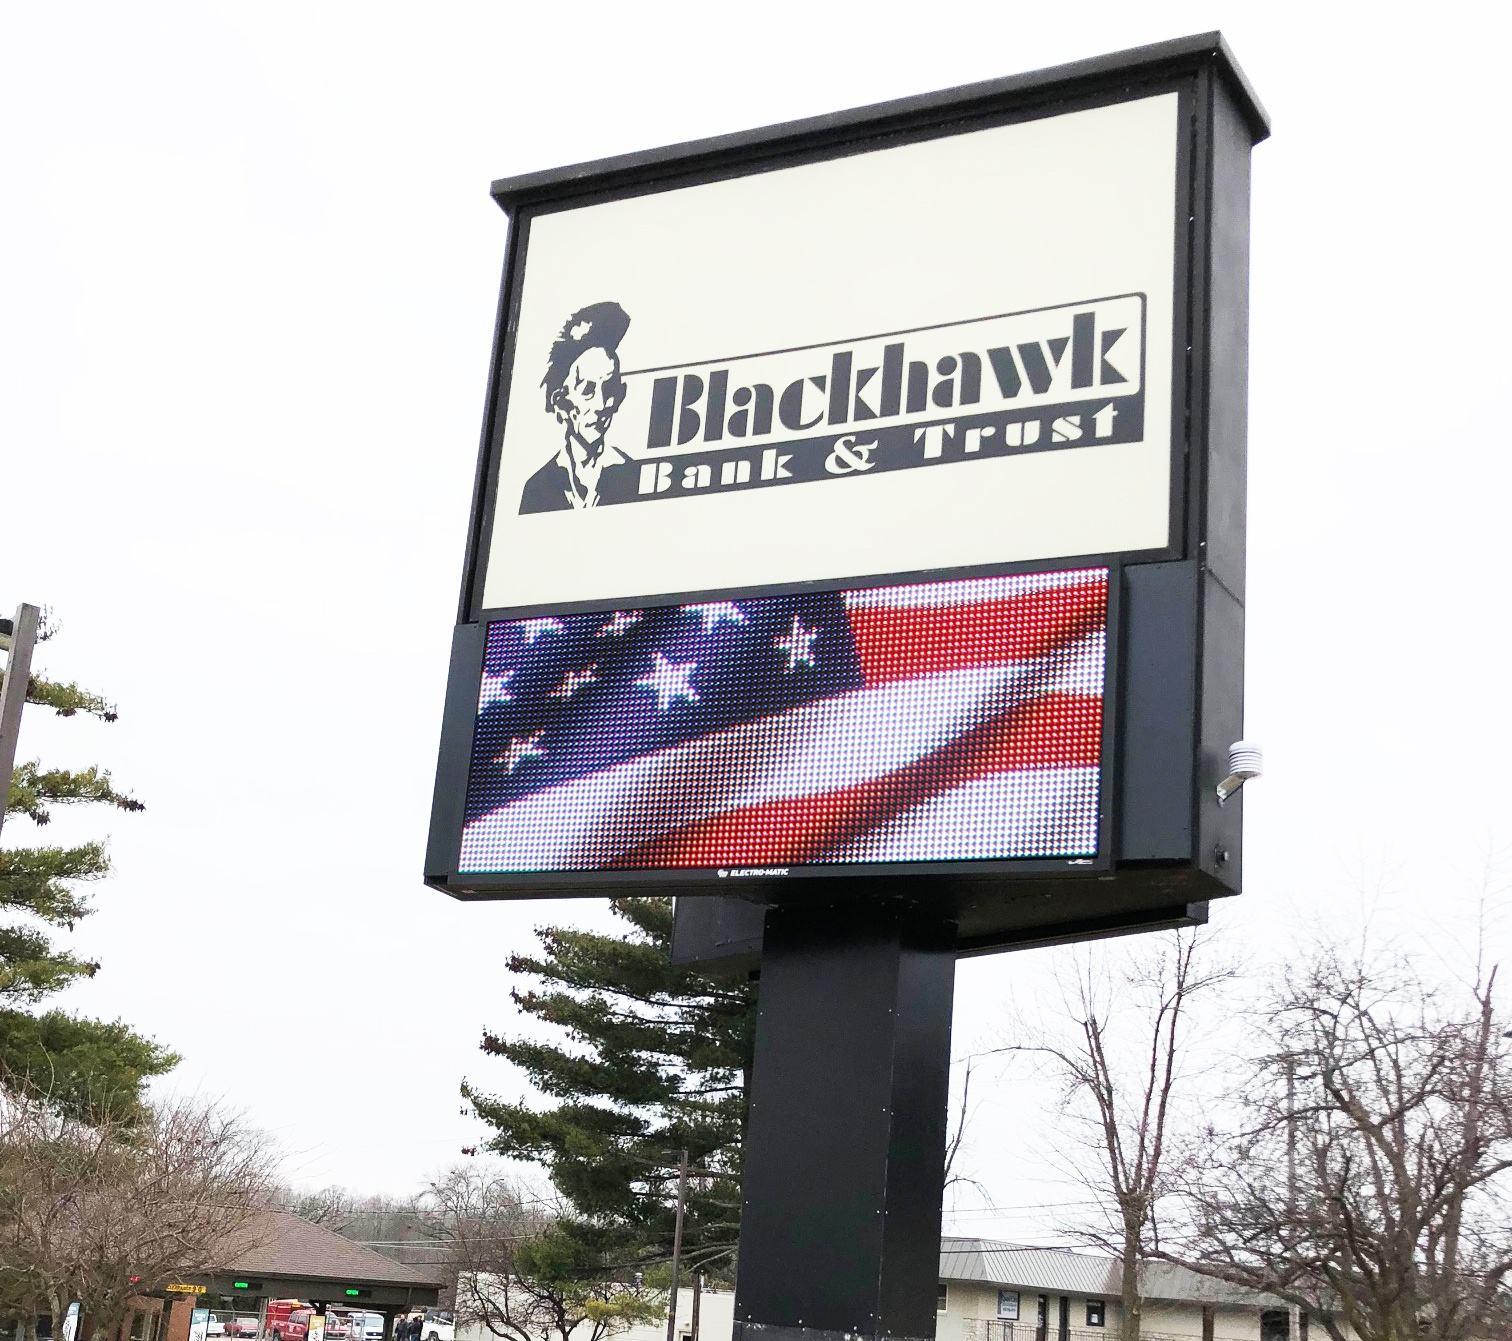 Blackhawk_Bank_Newsletter